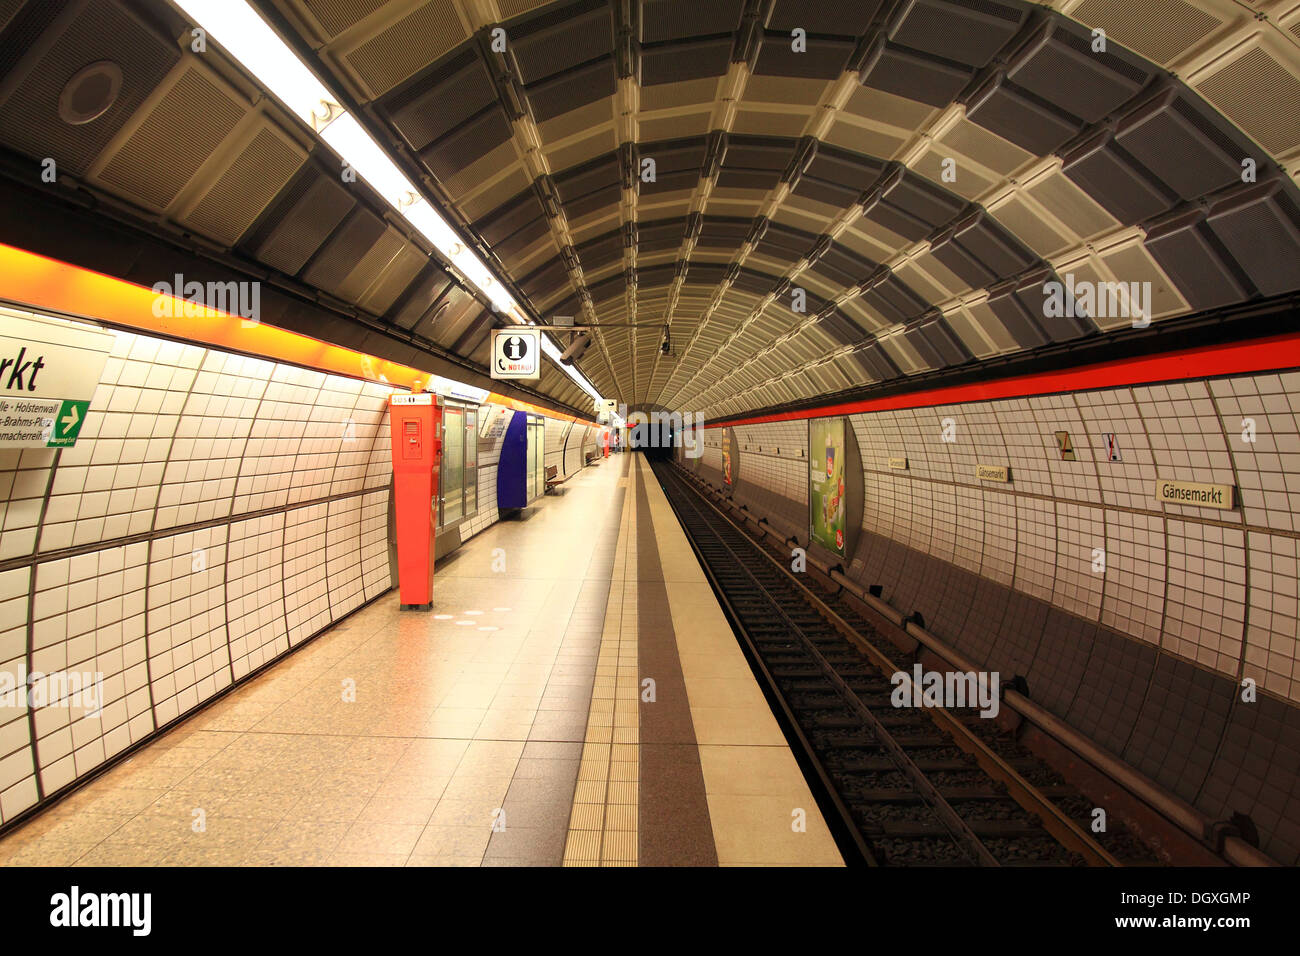 Gmp Subway Map.Subway Stops Stock Photos Subway Stops Stock Images Alamy